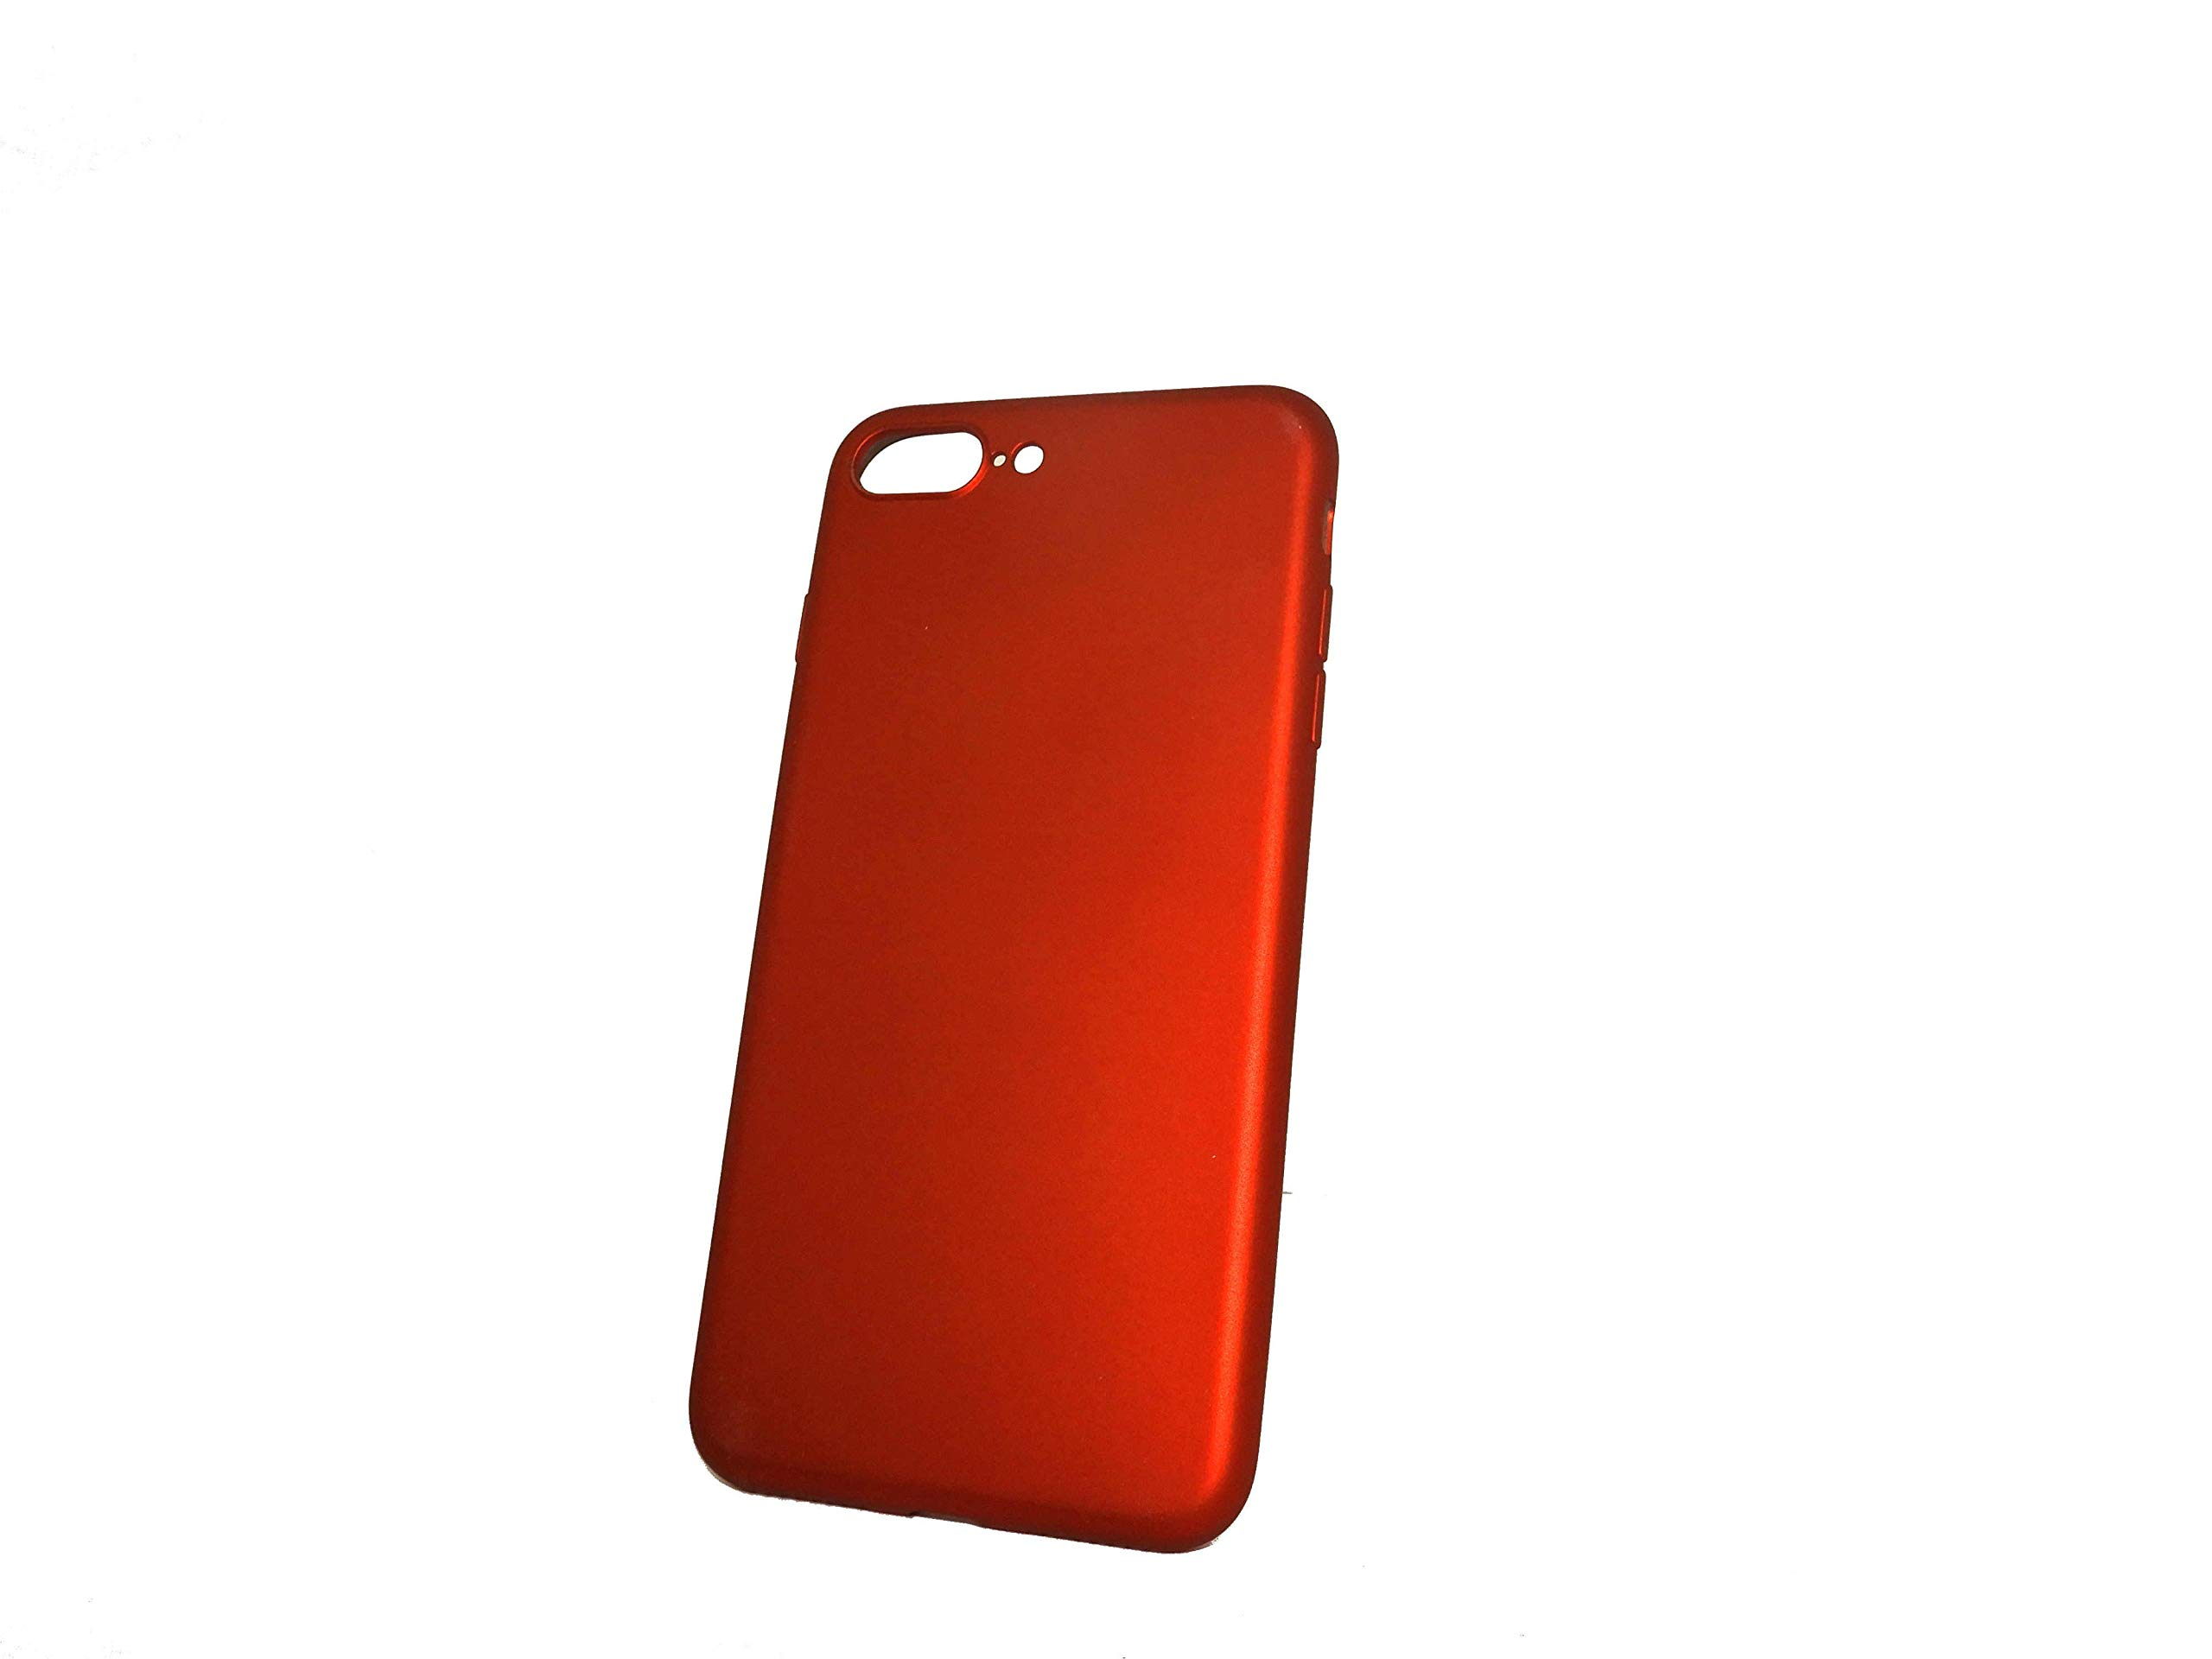 Slim iPhone 7 plus back cover case - Shiny Red